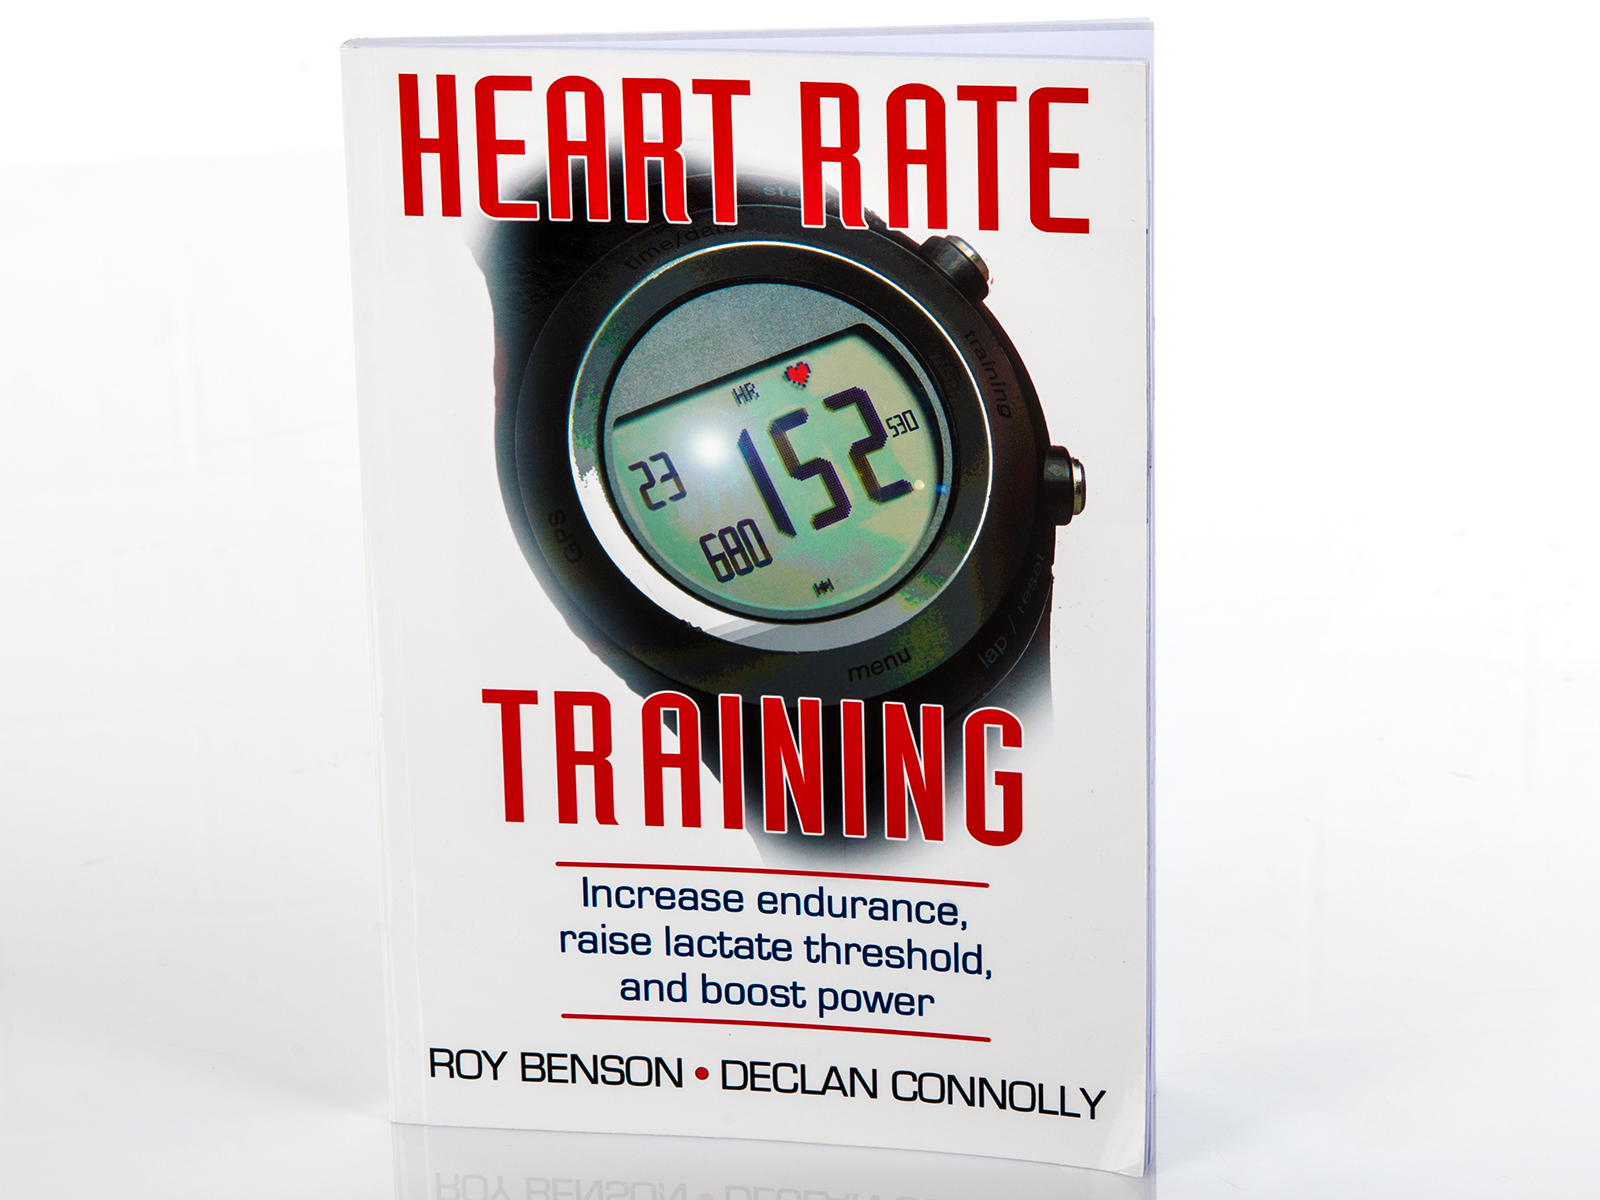 Book offers valuable heart rate training information